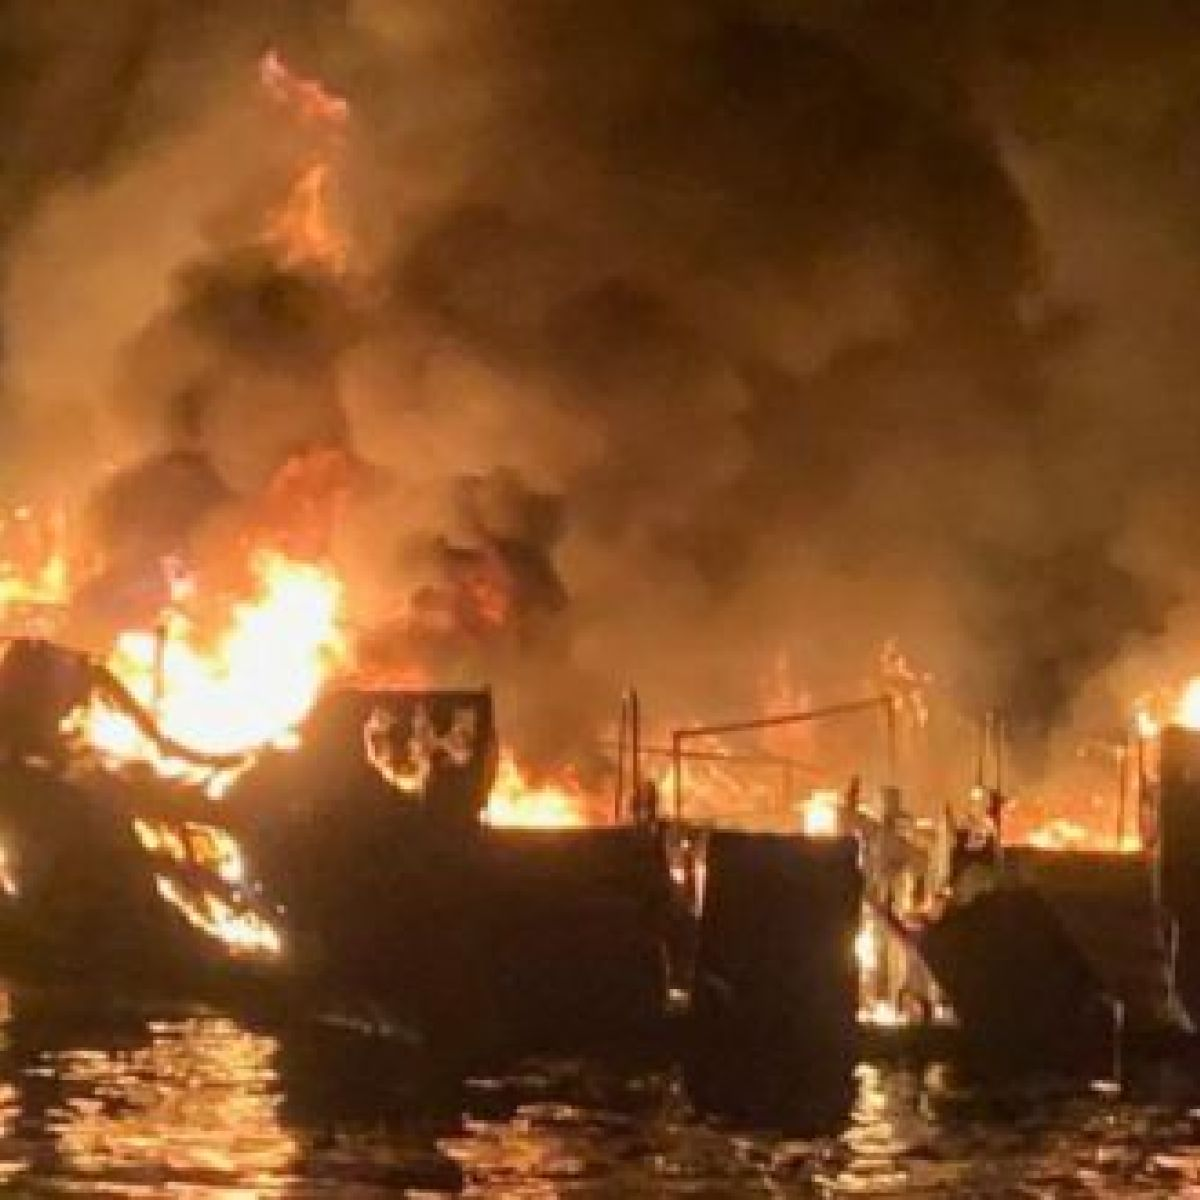 Search for bodies continues after boat fire kills at least 25